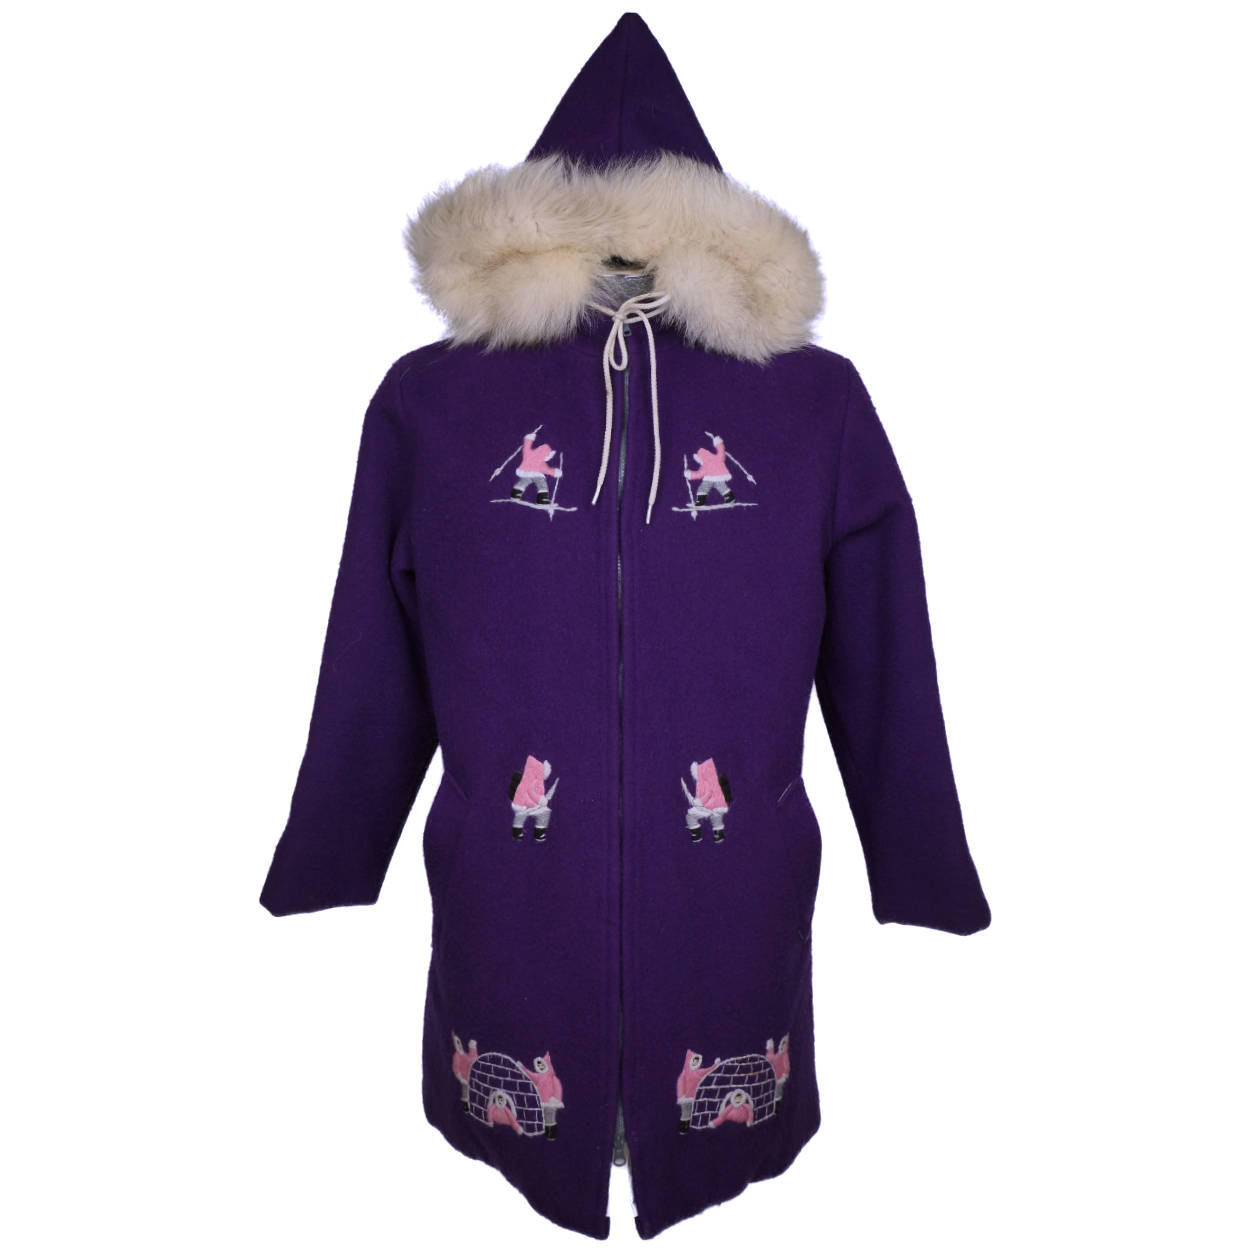 Vintage Eskimo Duffle Parka Coat Grenfell Handicrafts Embroidered Purp